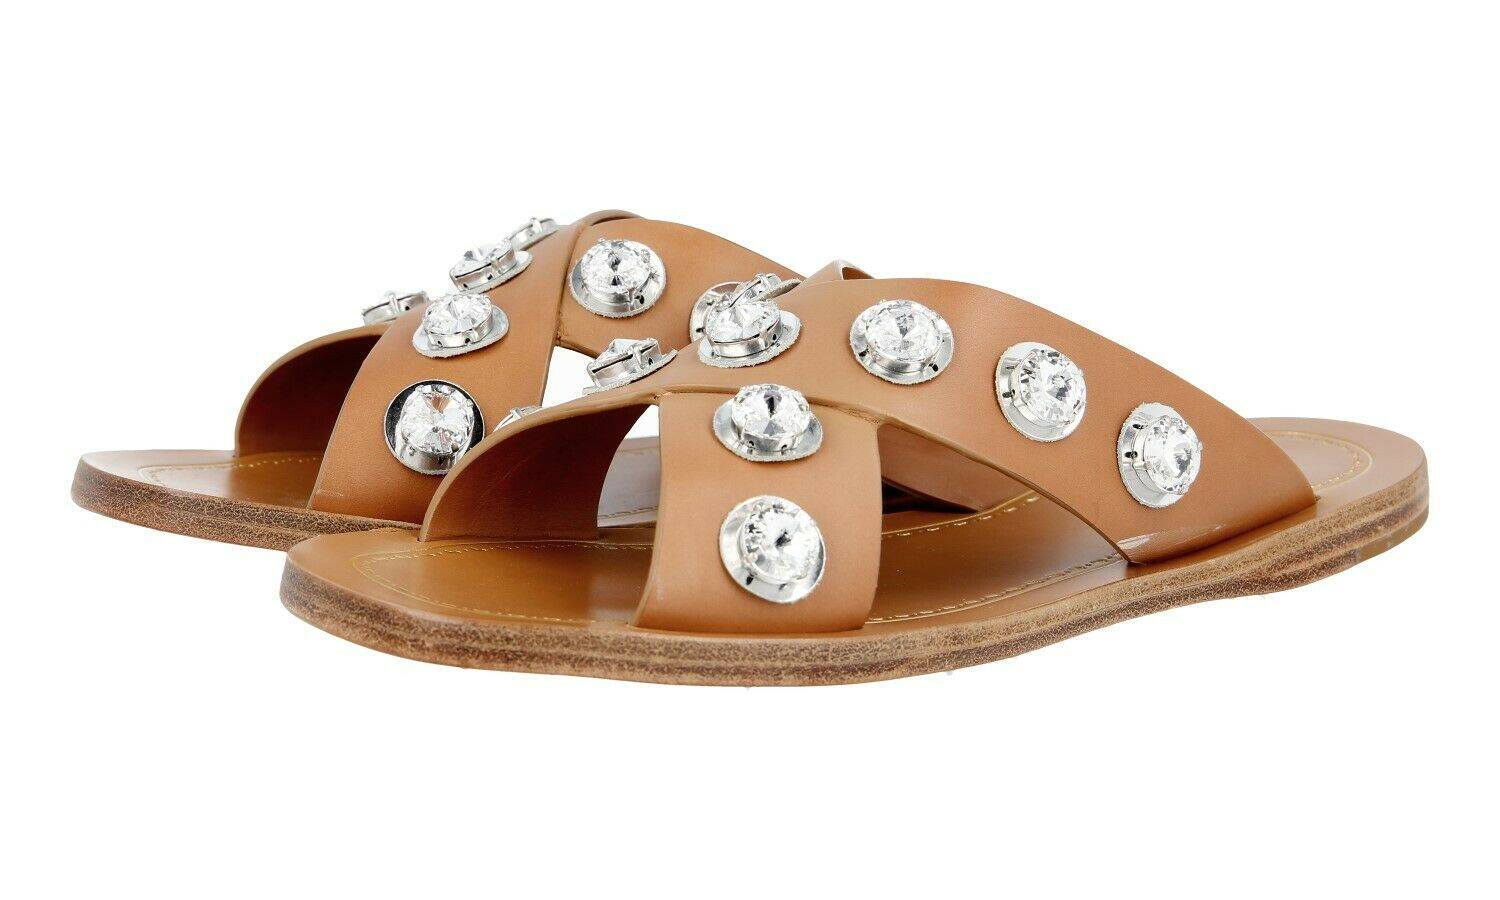 AUTH LUXURY PRADA SANDALS SHOES 1XX247 NATURALE RHINESTONE 37,5 38 UK 4.5